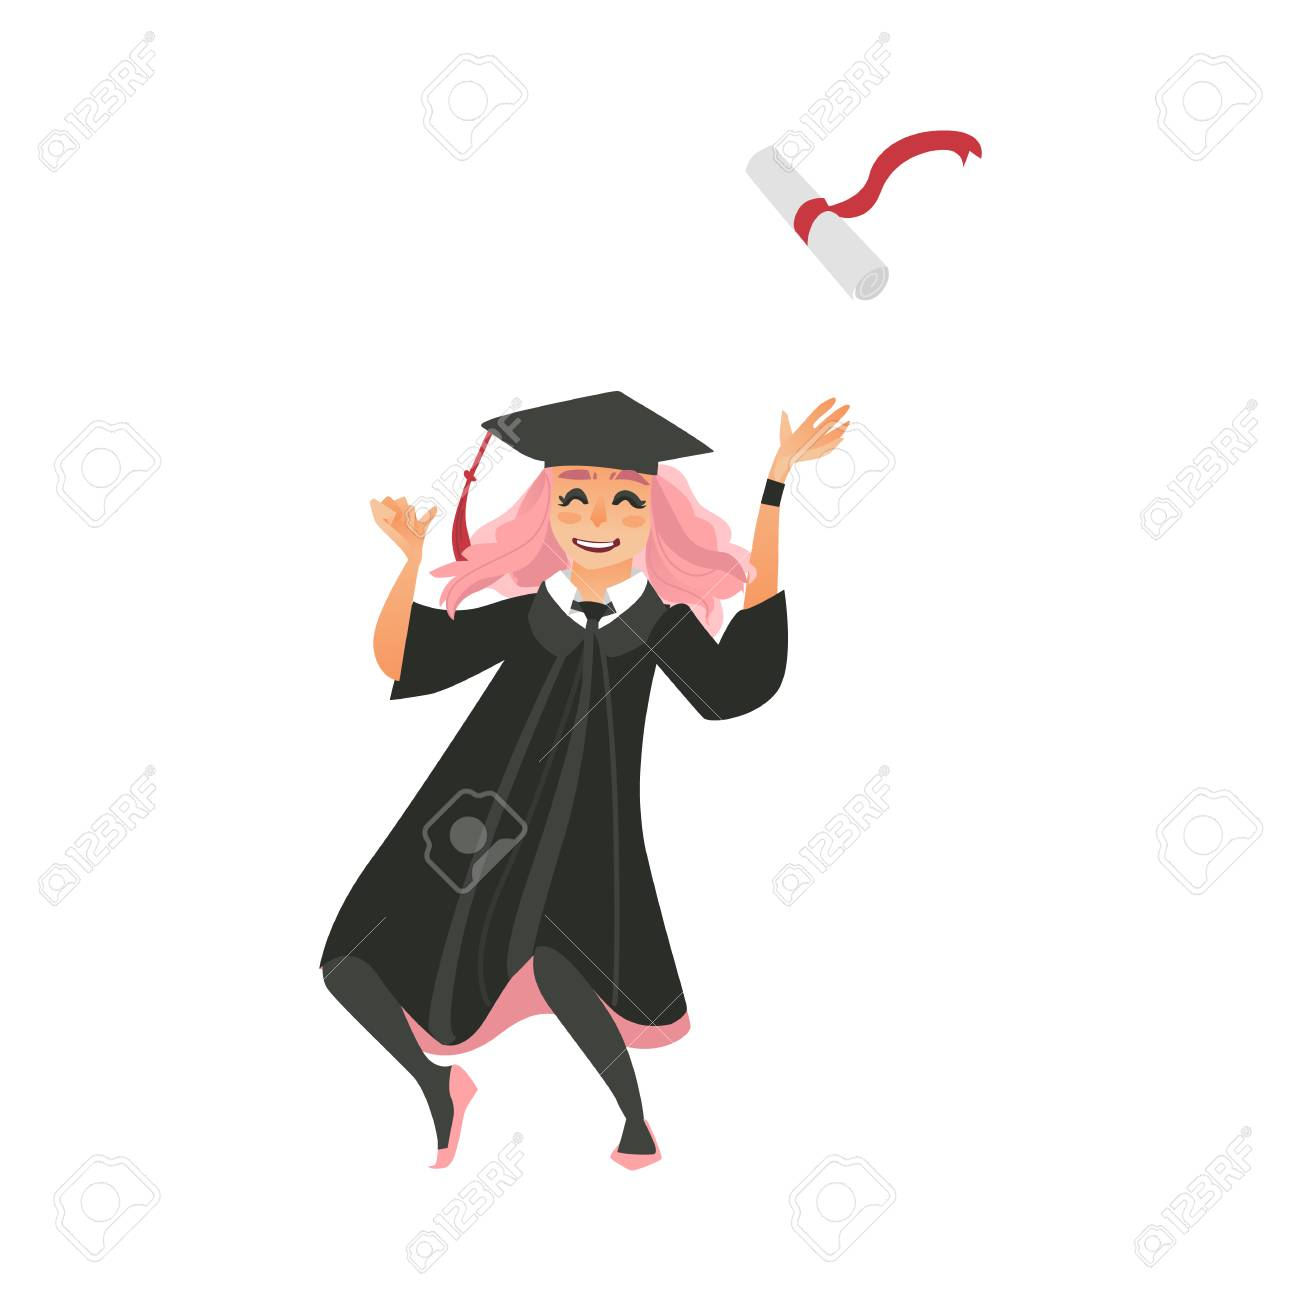 Girl In Graduation Cap And Gown Throwing Diploma Up, Dancing ...